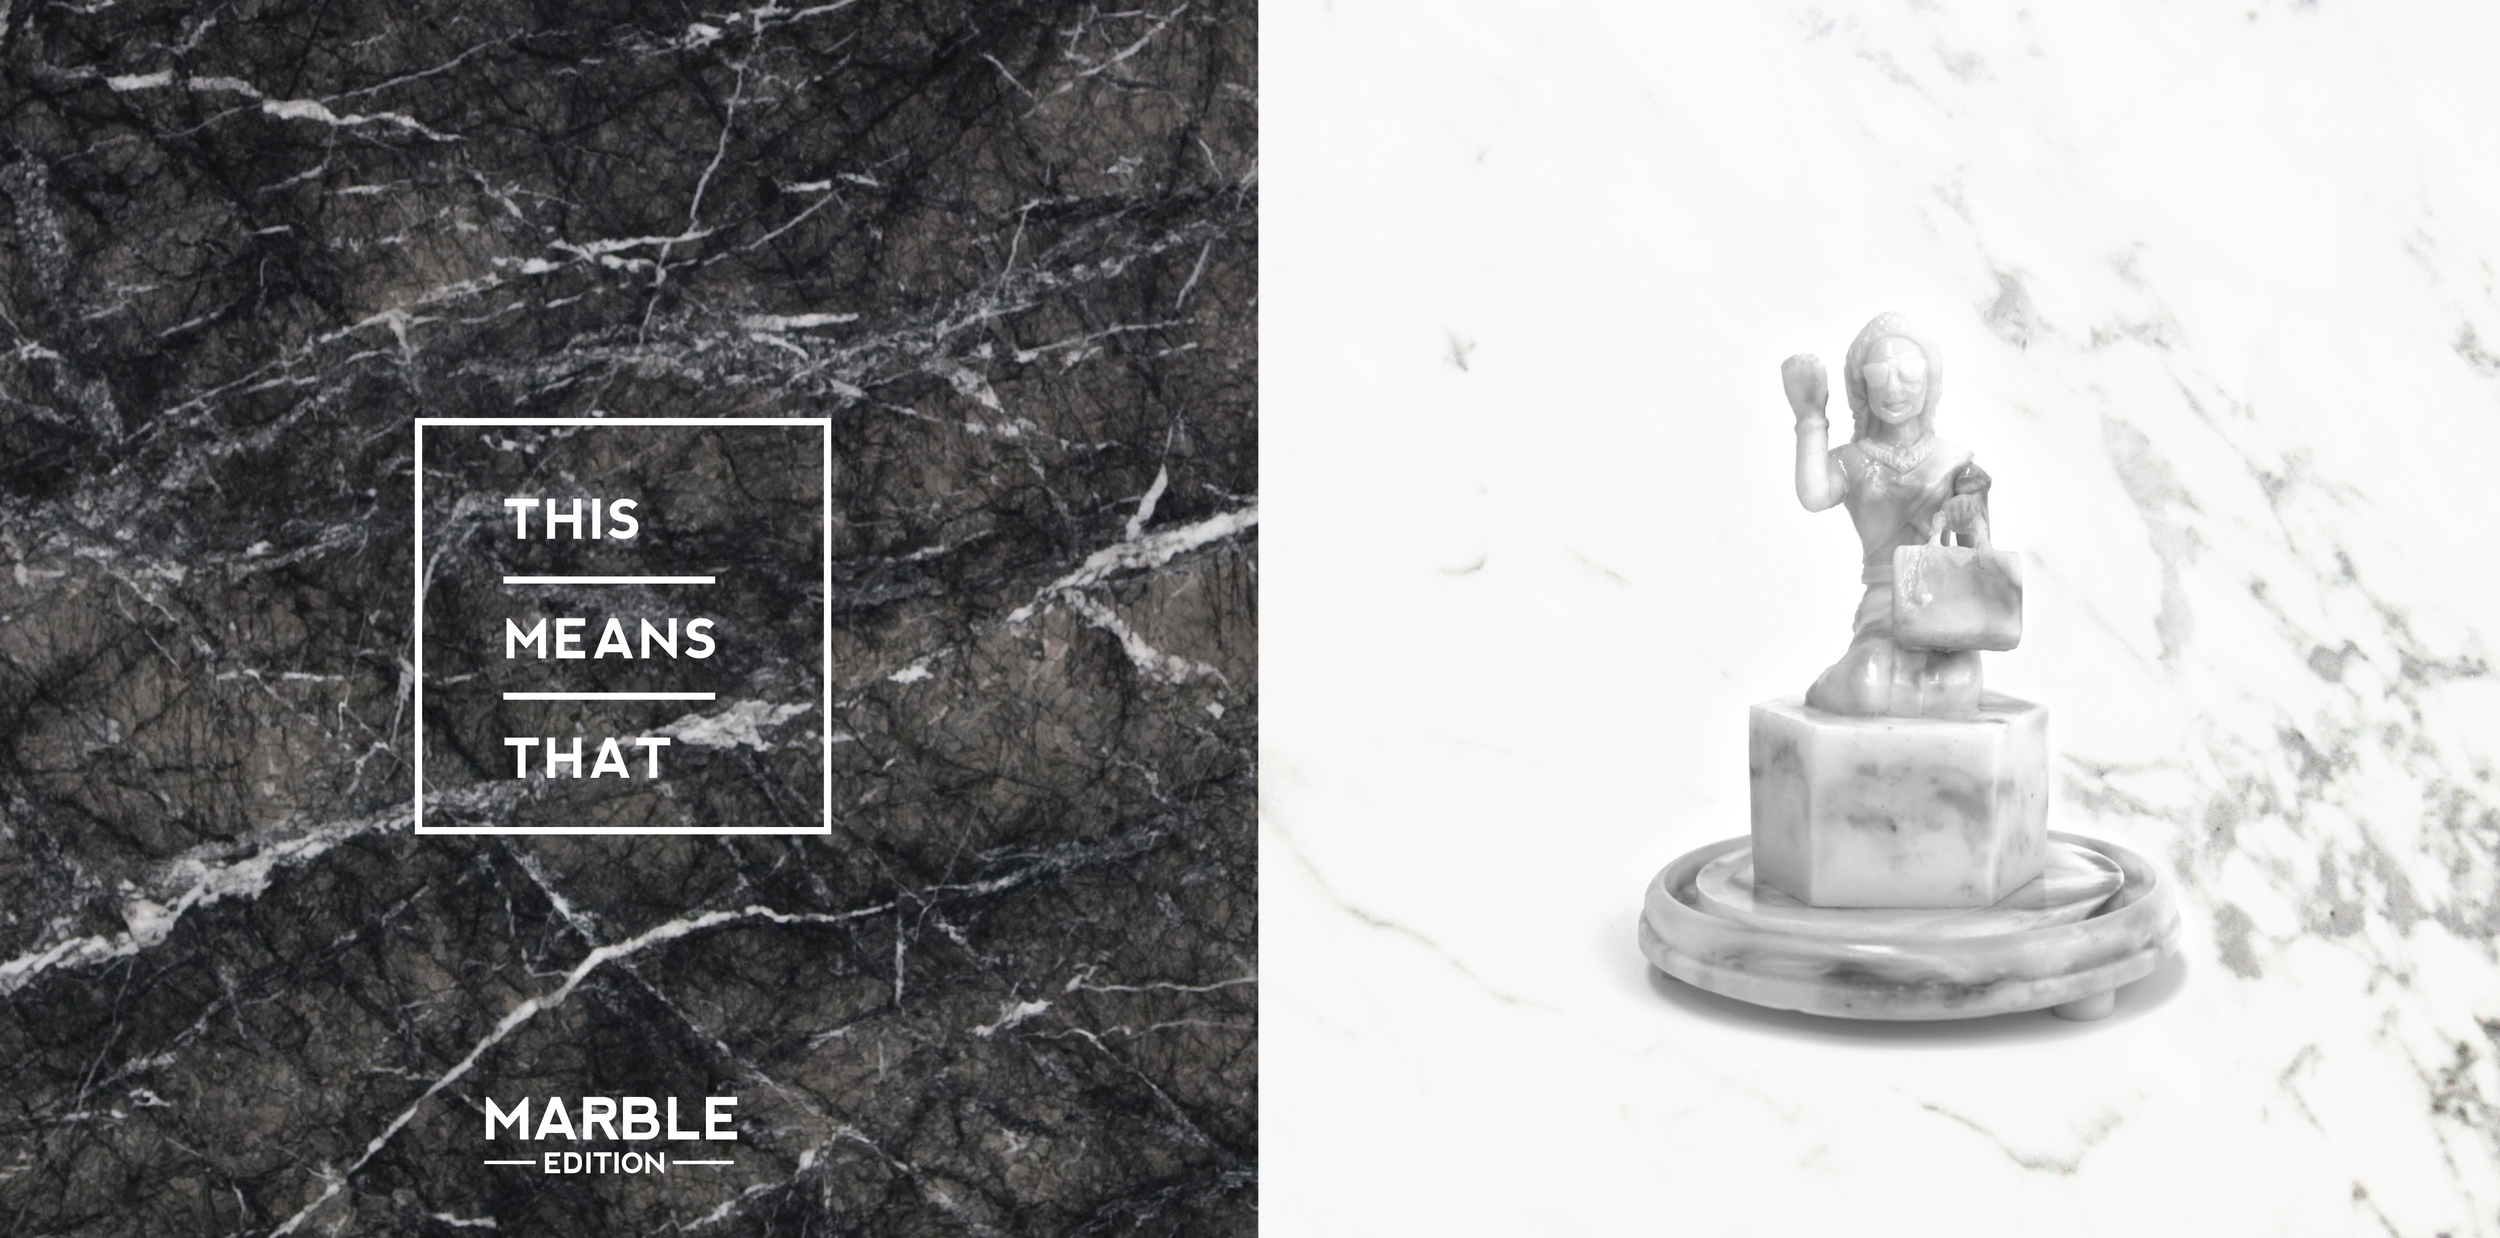 White Marble, the edition of 2  **NOW SOLD OUT**